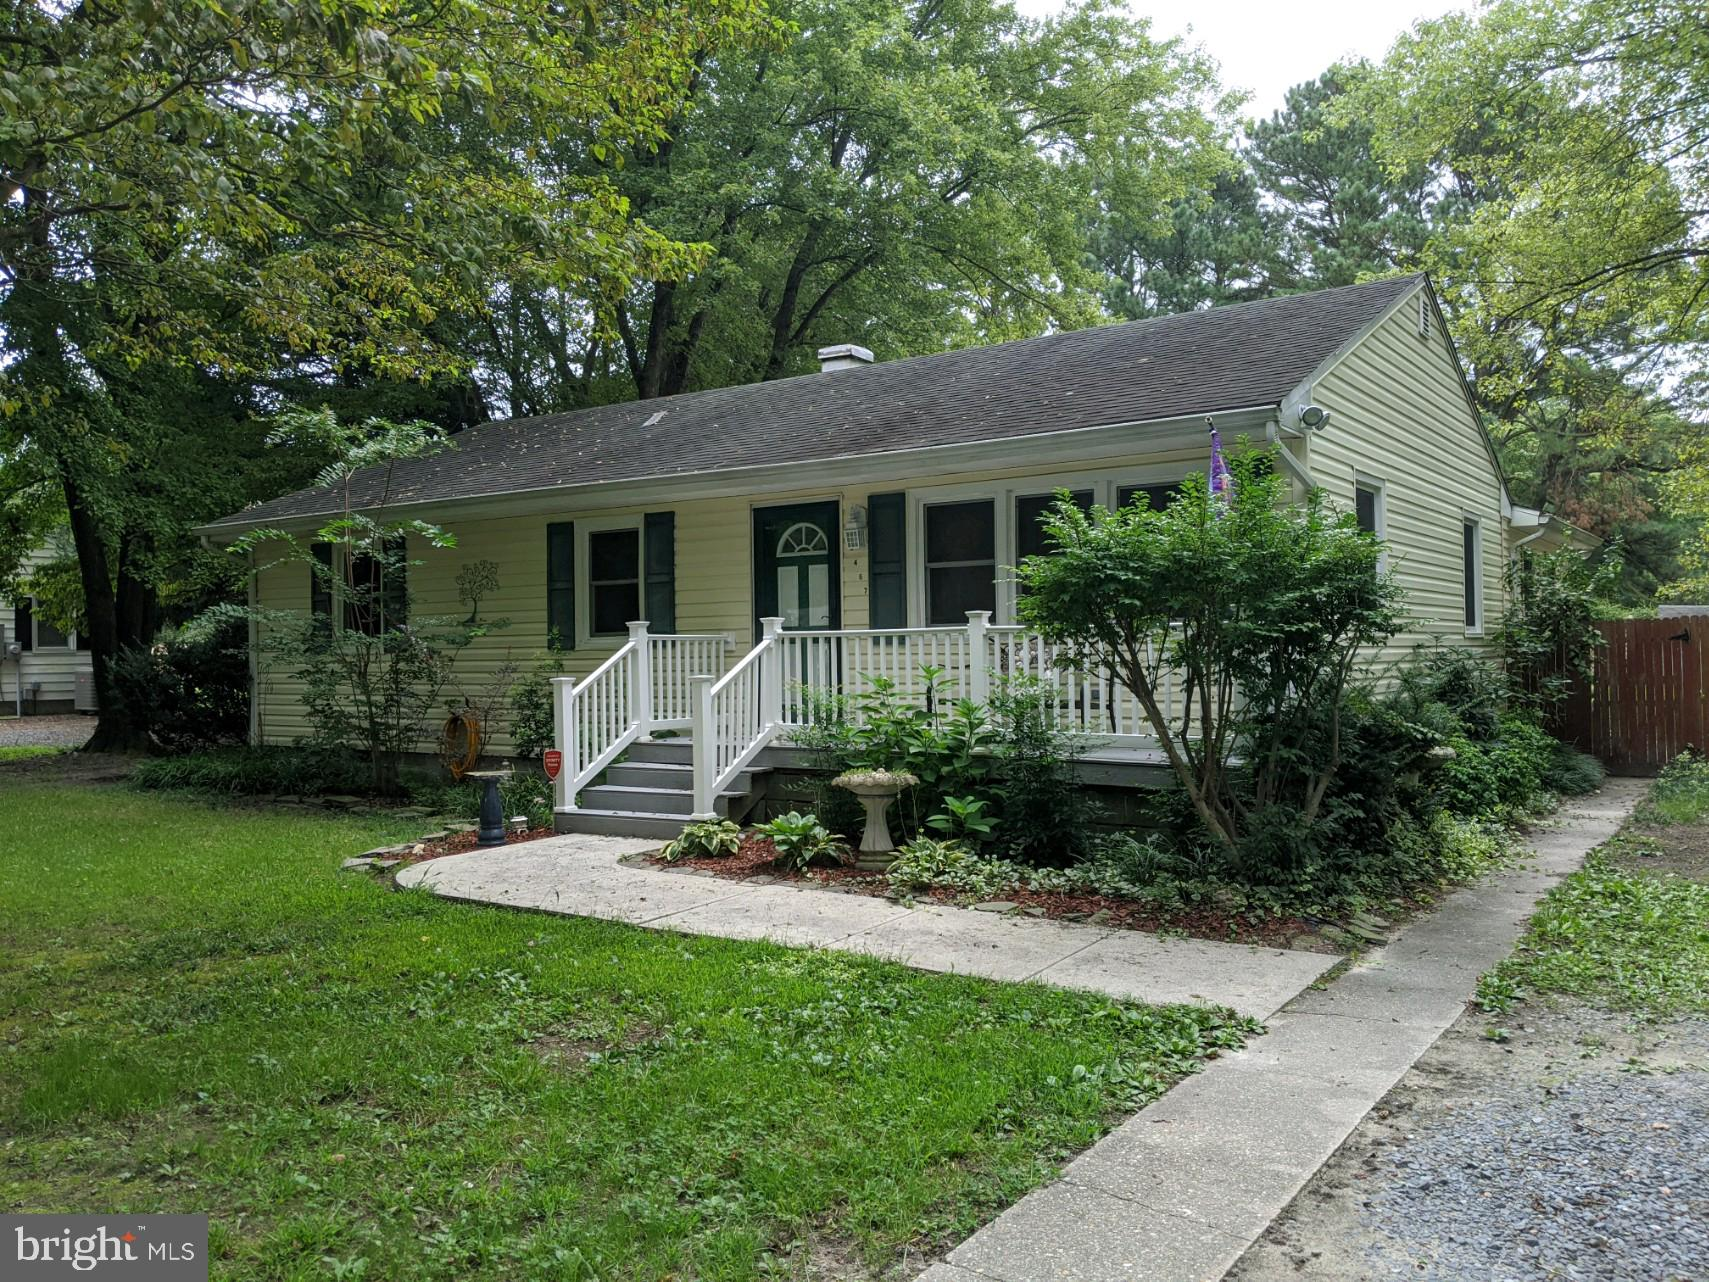 Single level living!!! This home craves only a little TLC to make it your dream home. Come home and